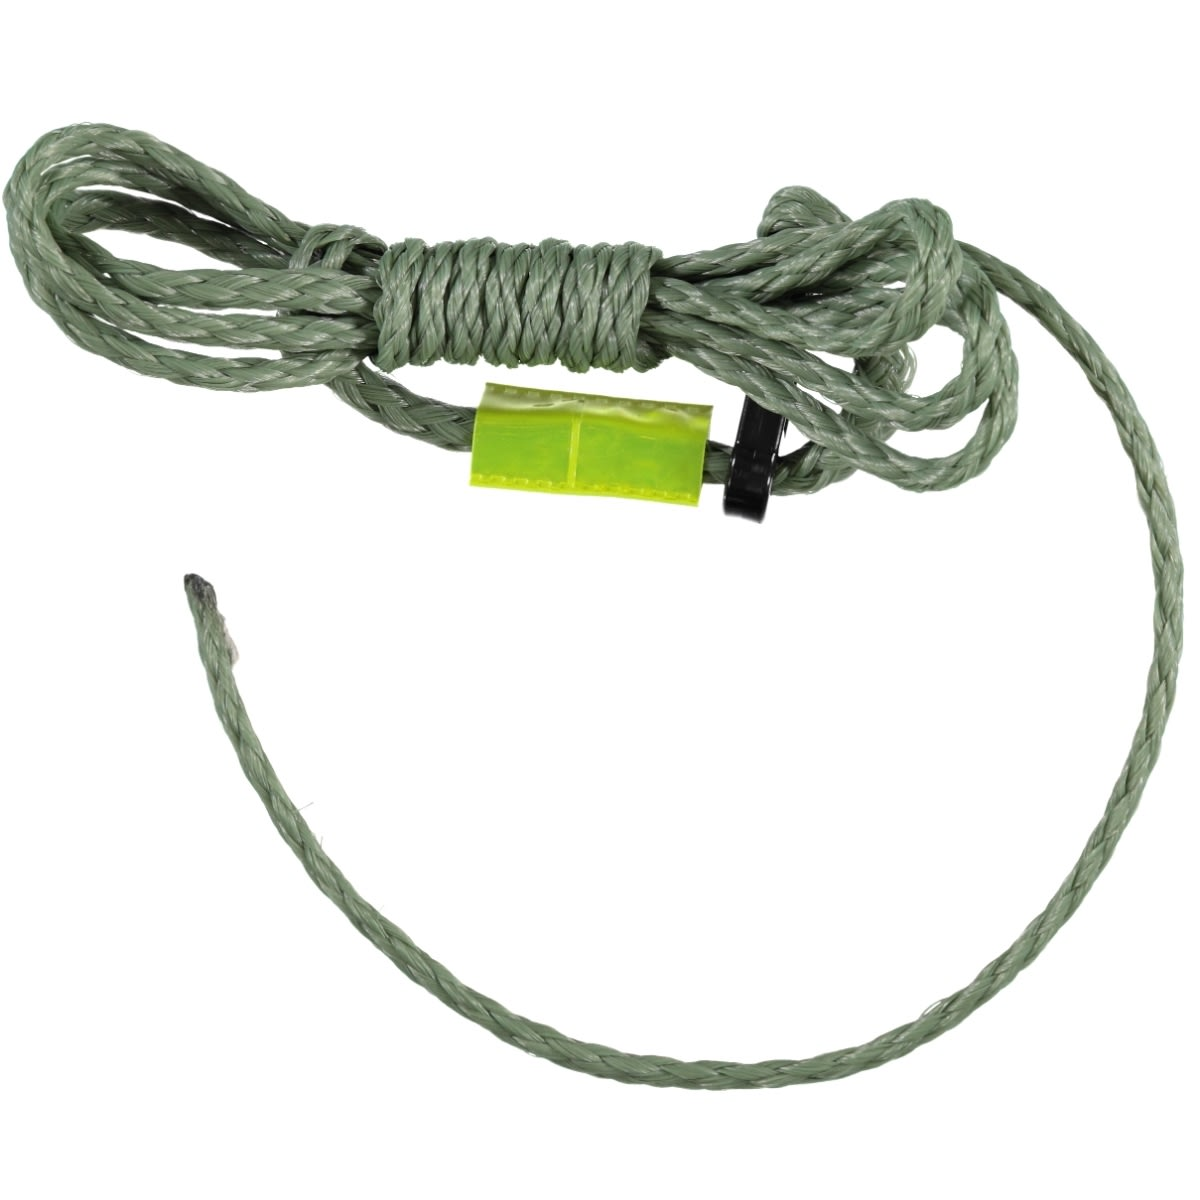 Campmor 7mm Single Guy Rope